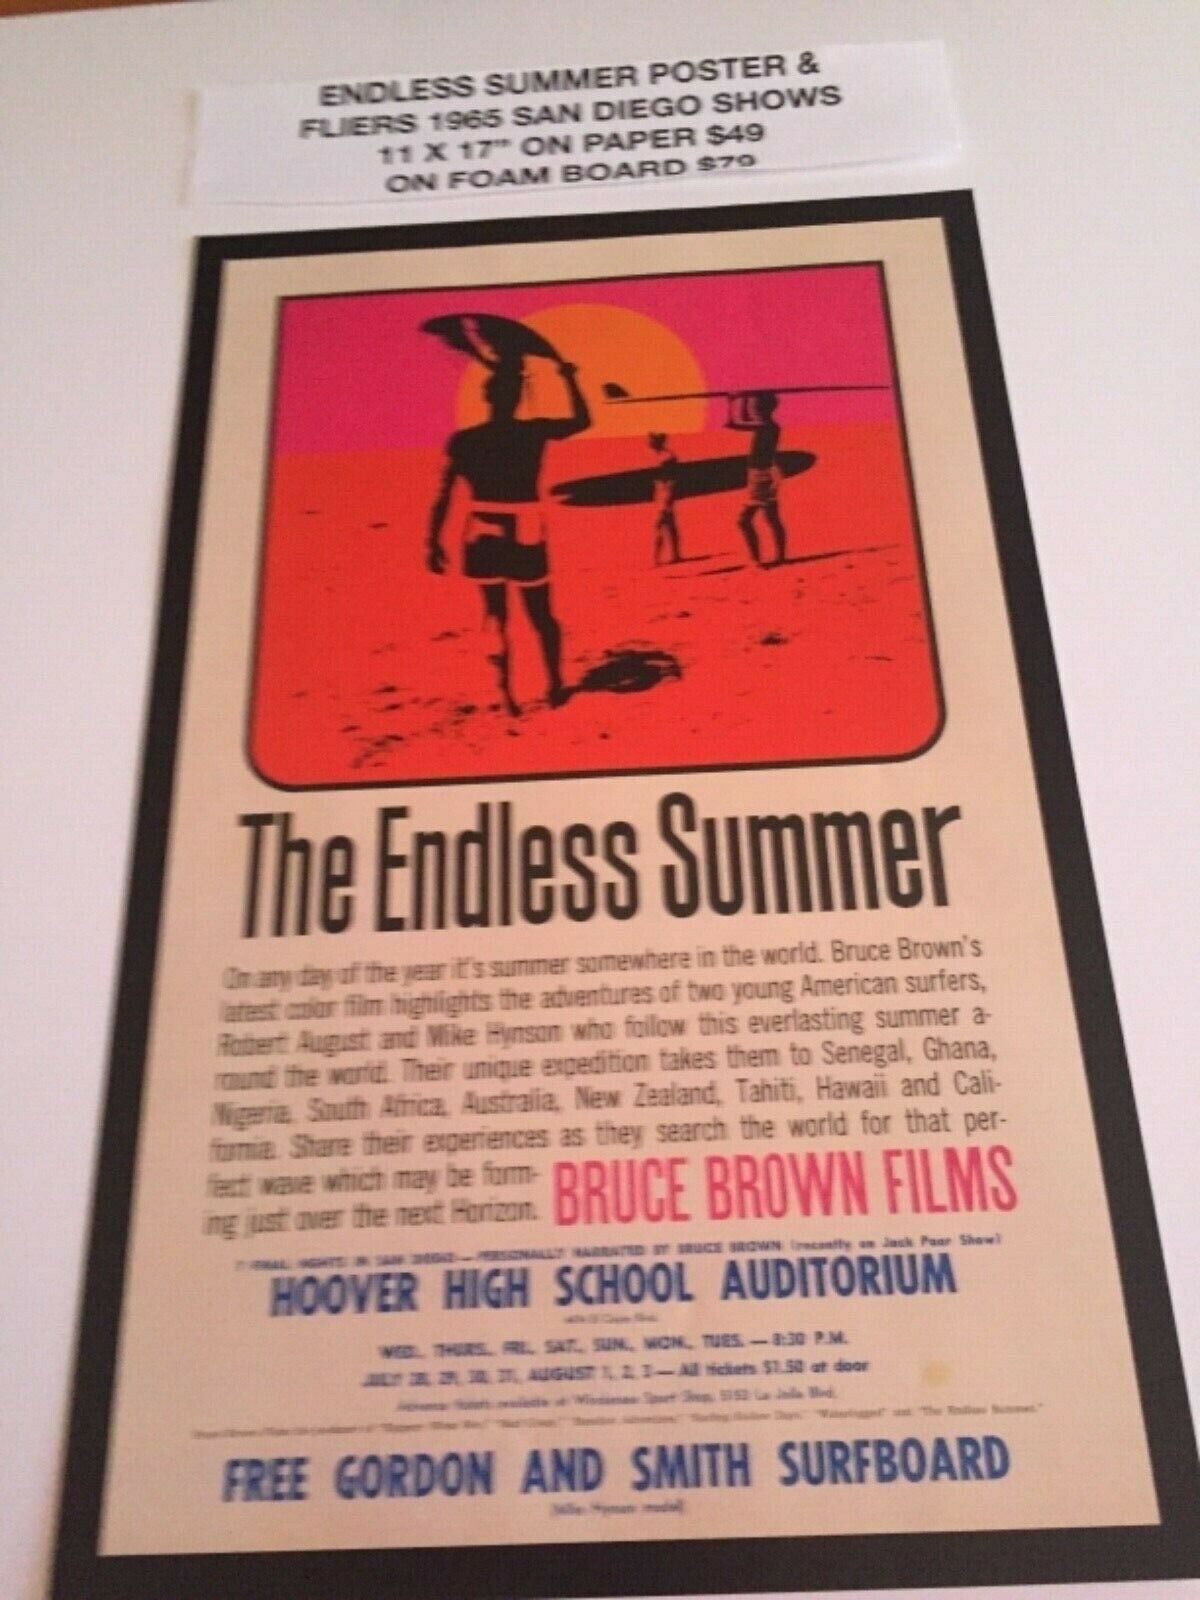 ENDLESS SUMMER 1965 SAN DIEGO MOVIE POSTERS 11 X 17""